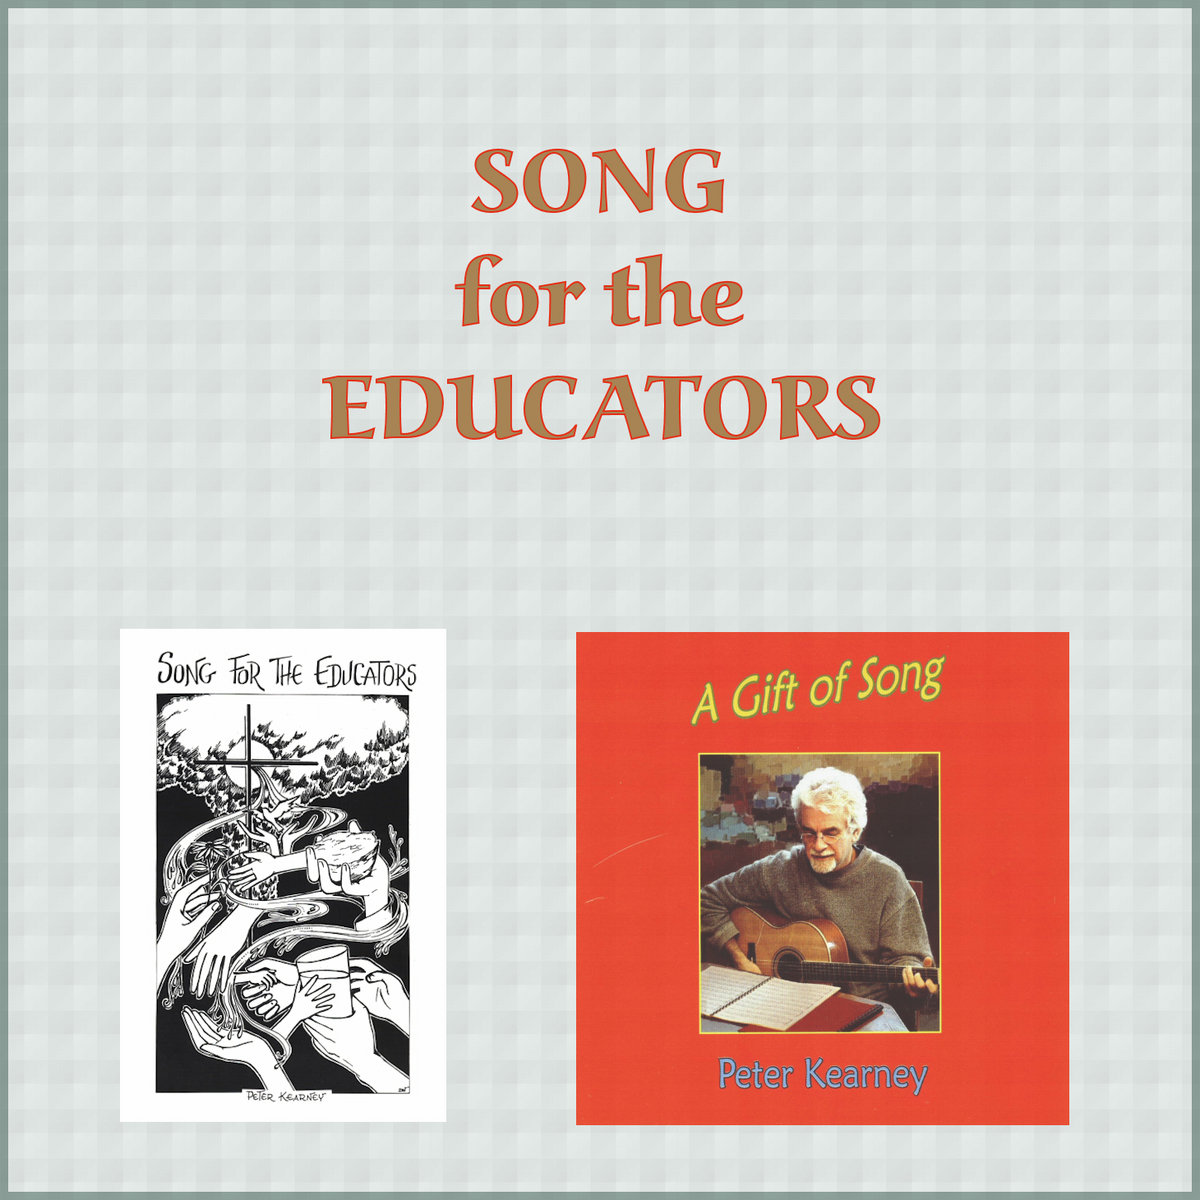 #11 SONG FOR THE EDUCATORS by Peter Kearney